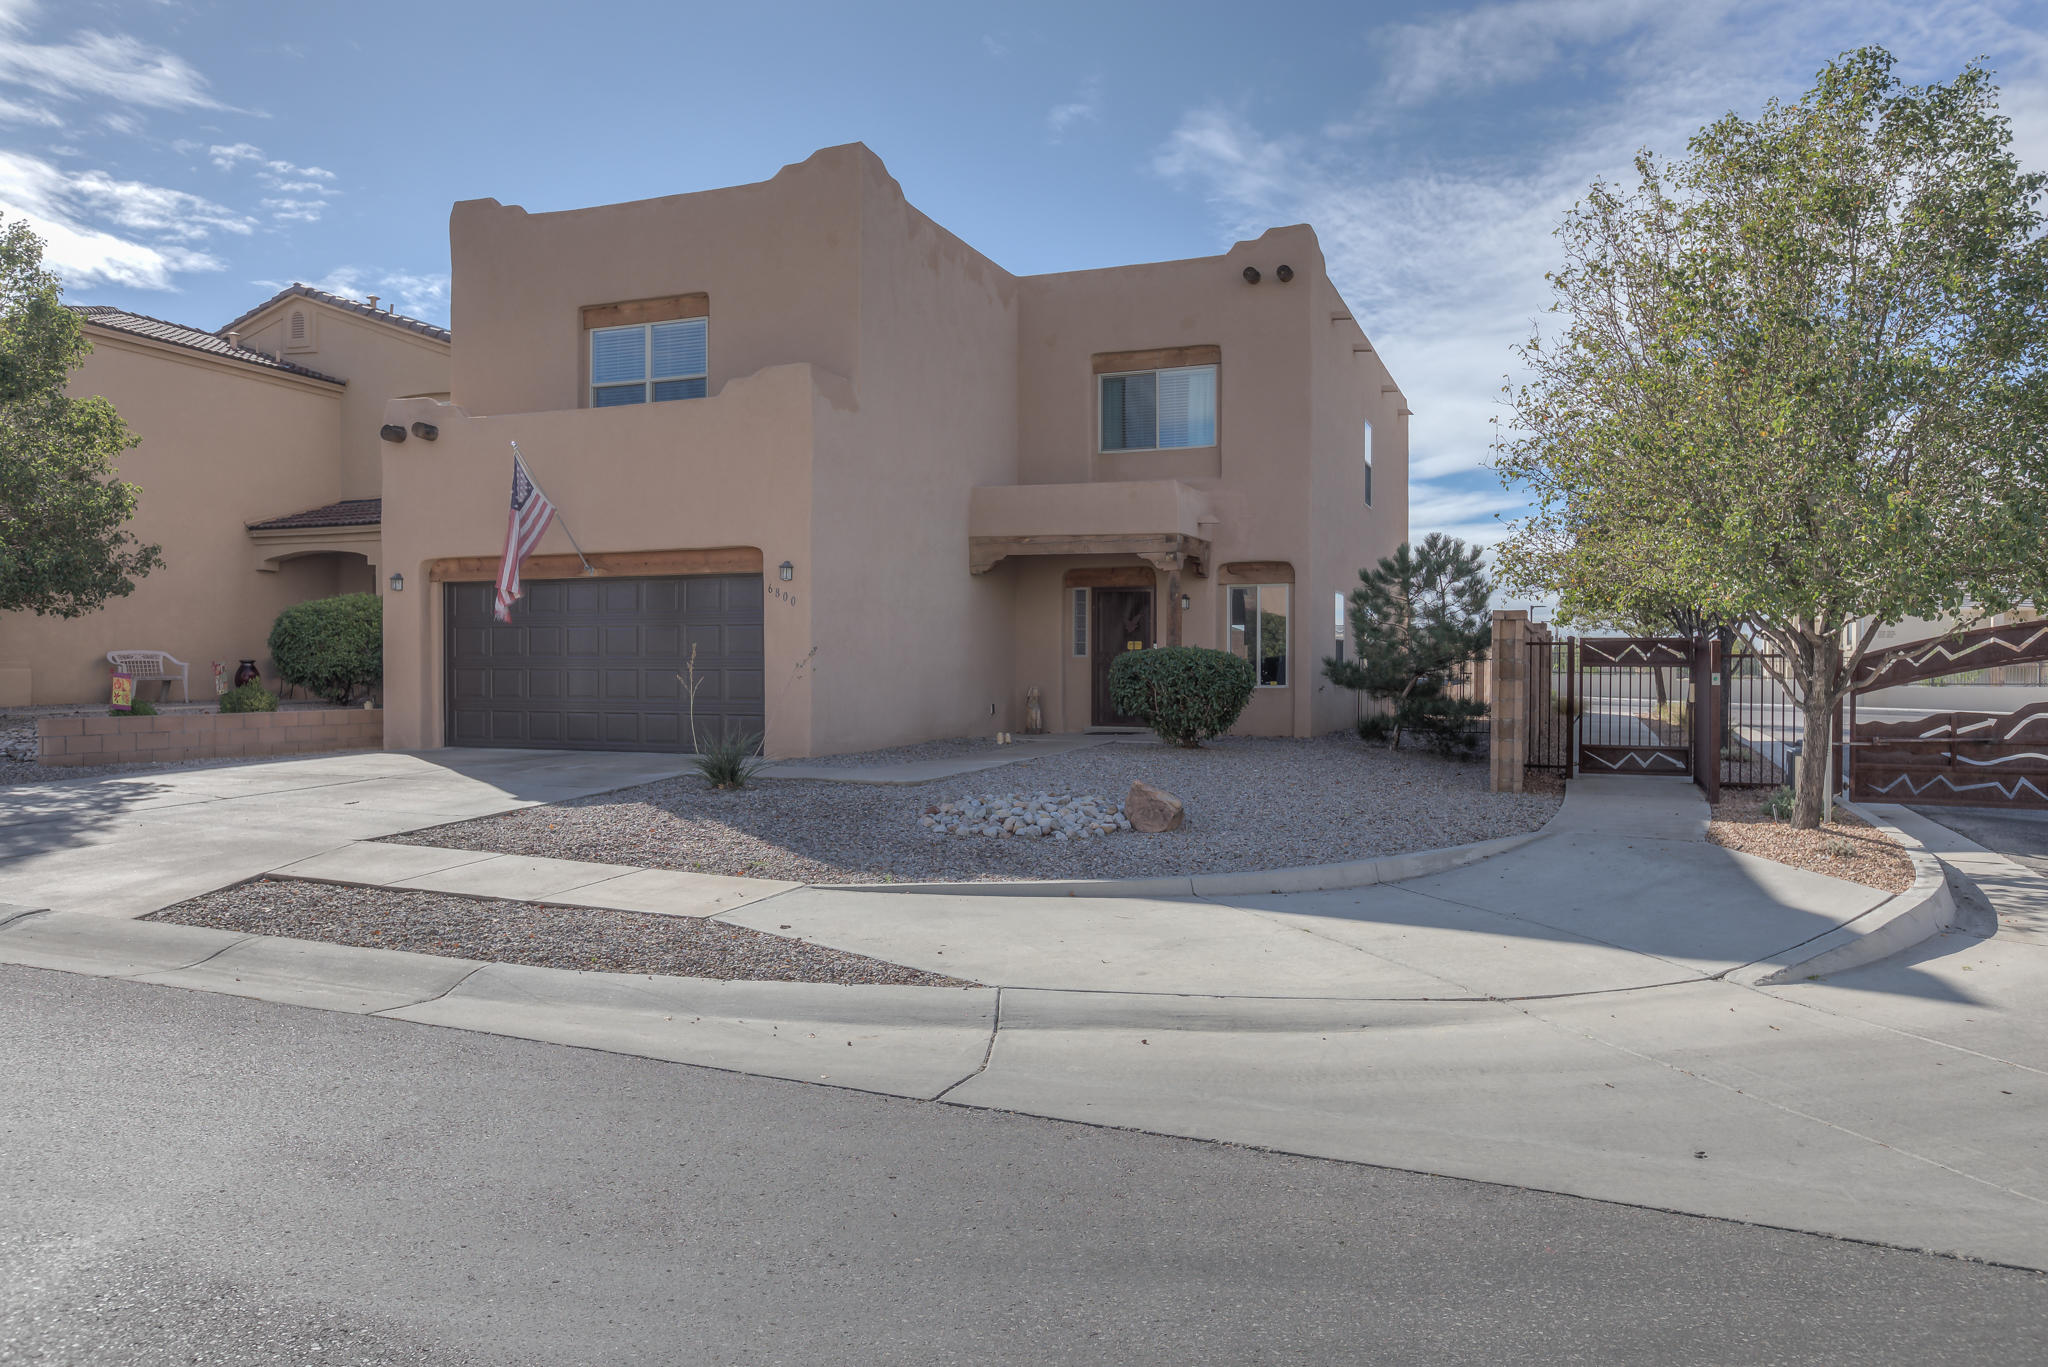 6800 Glenlochy Way, Albuquerque NM 87113